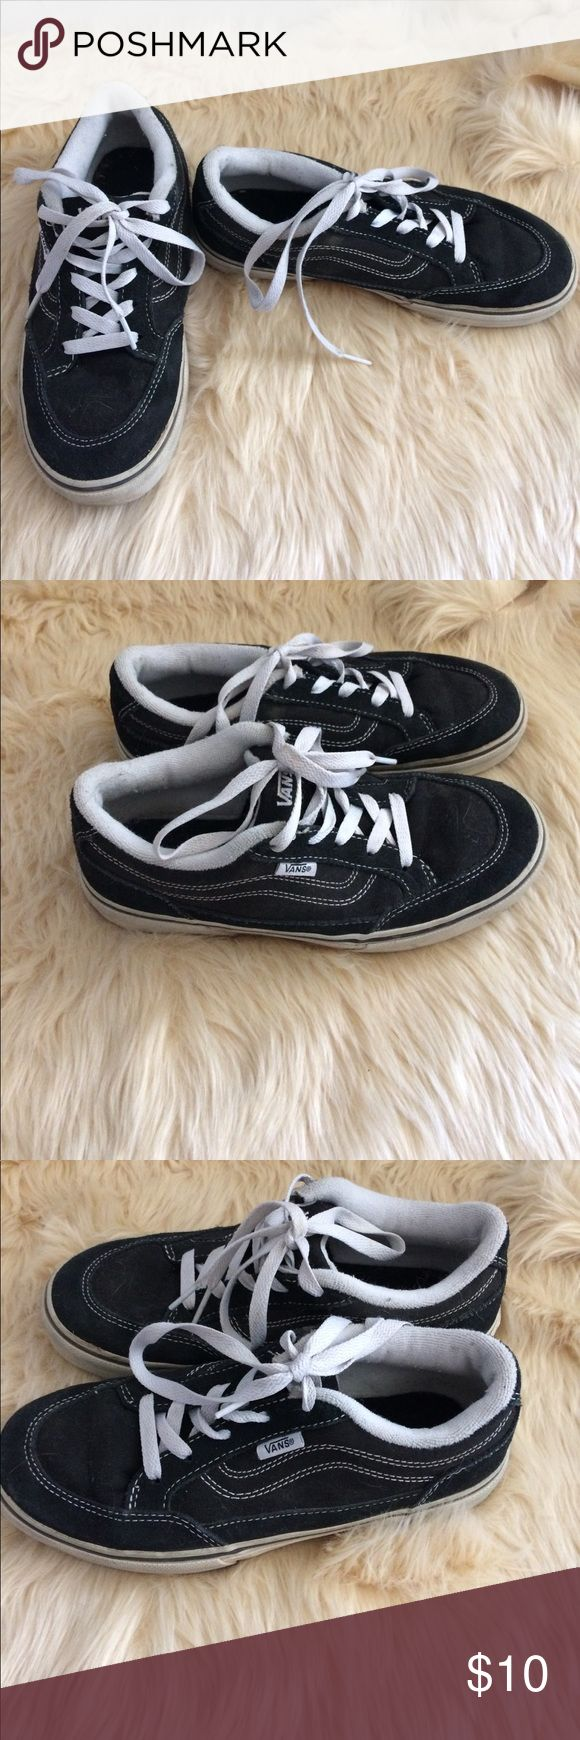 Black Vans shoes This is a pair black vans tennis shoes my son hardly warm there still in really good condition Vans Shoes Sneakers